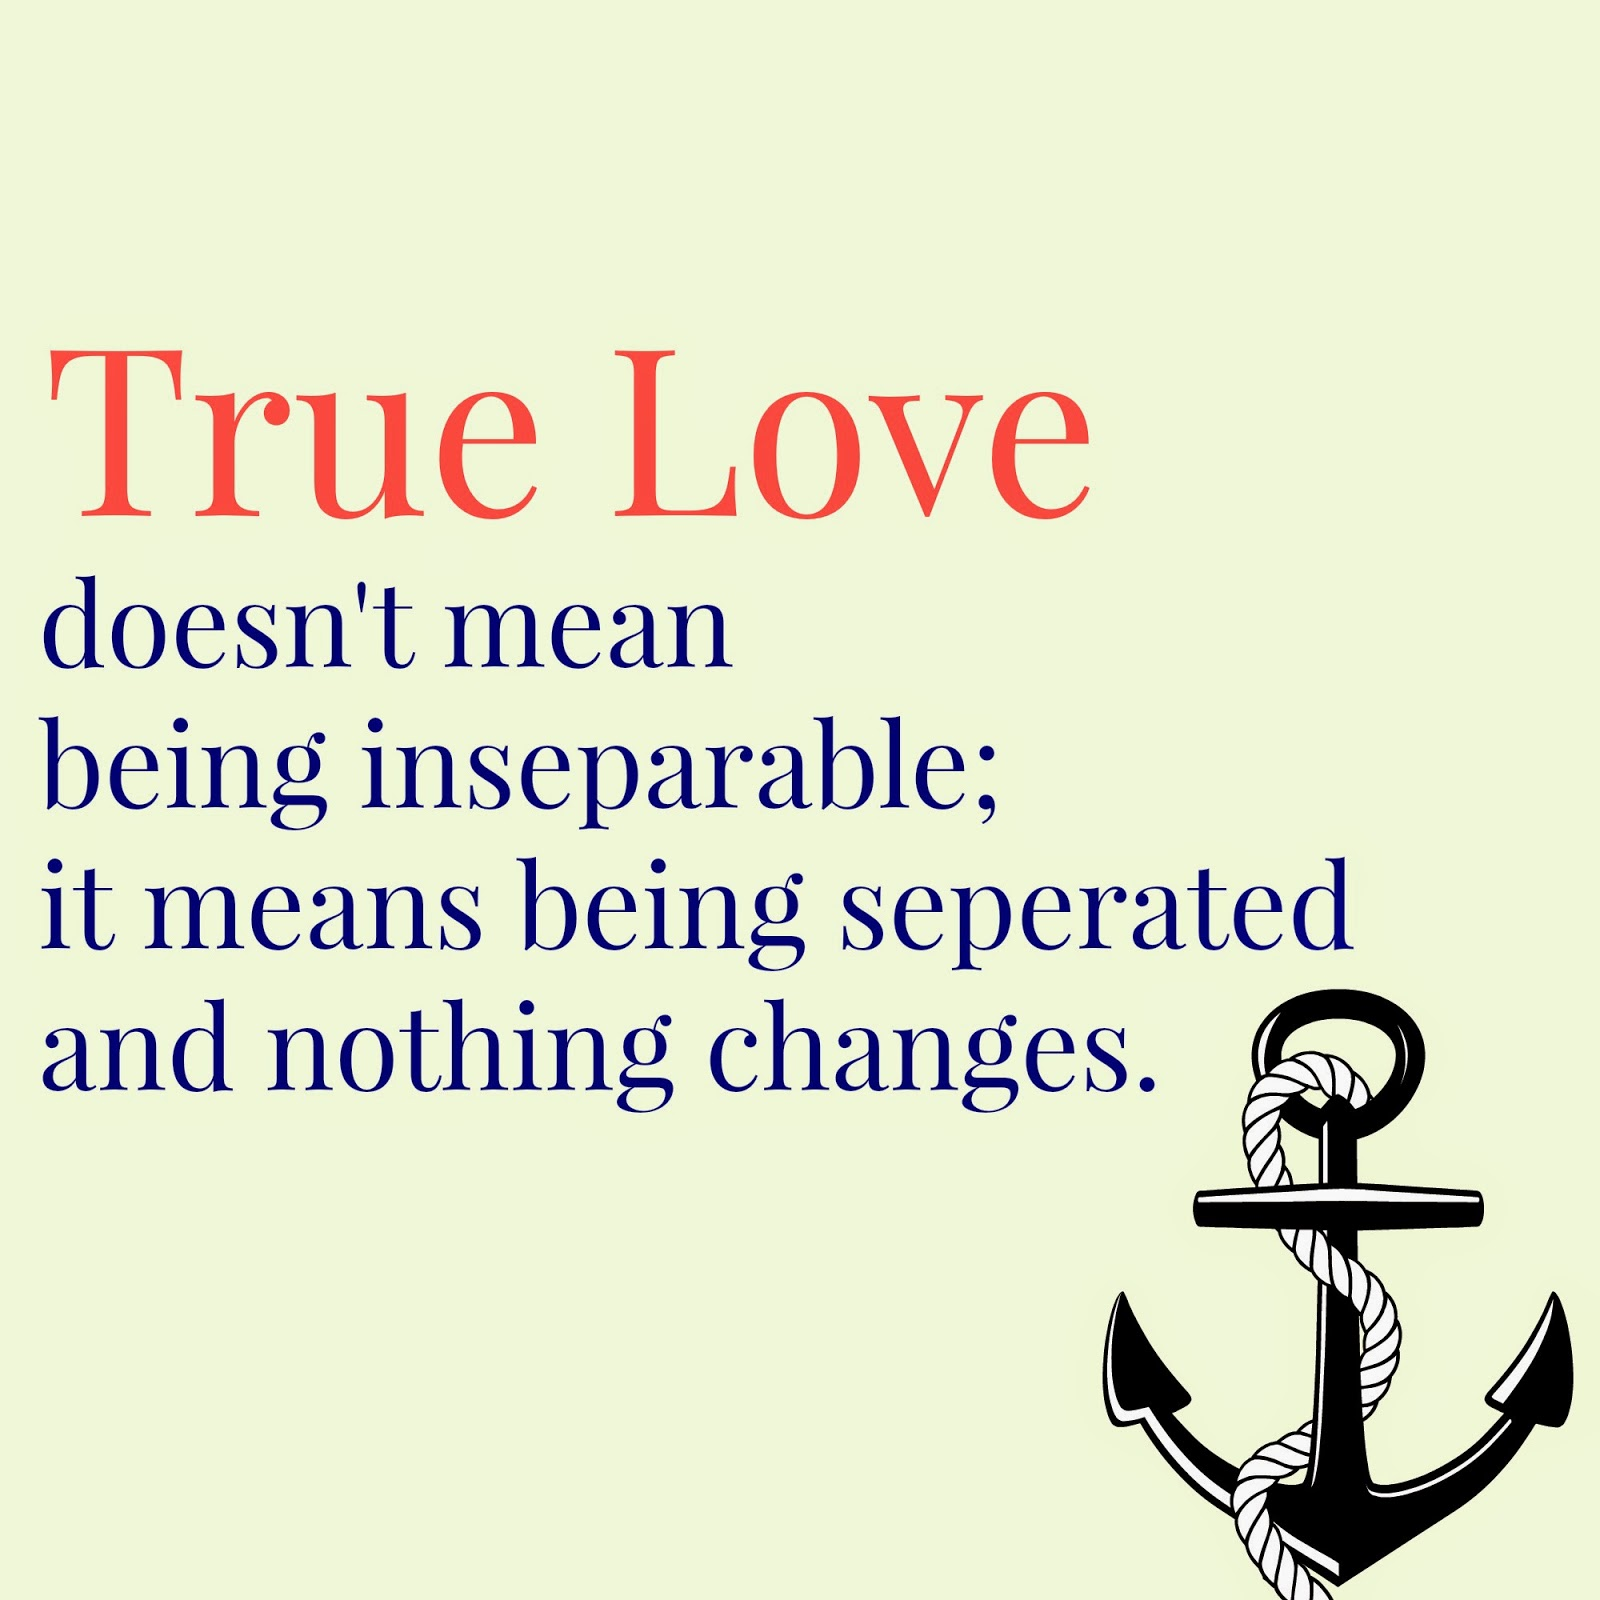 Quotes about true love and distance